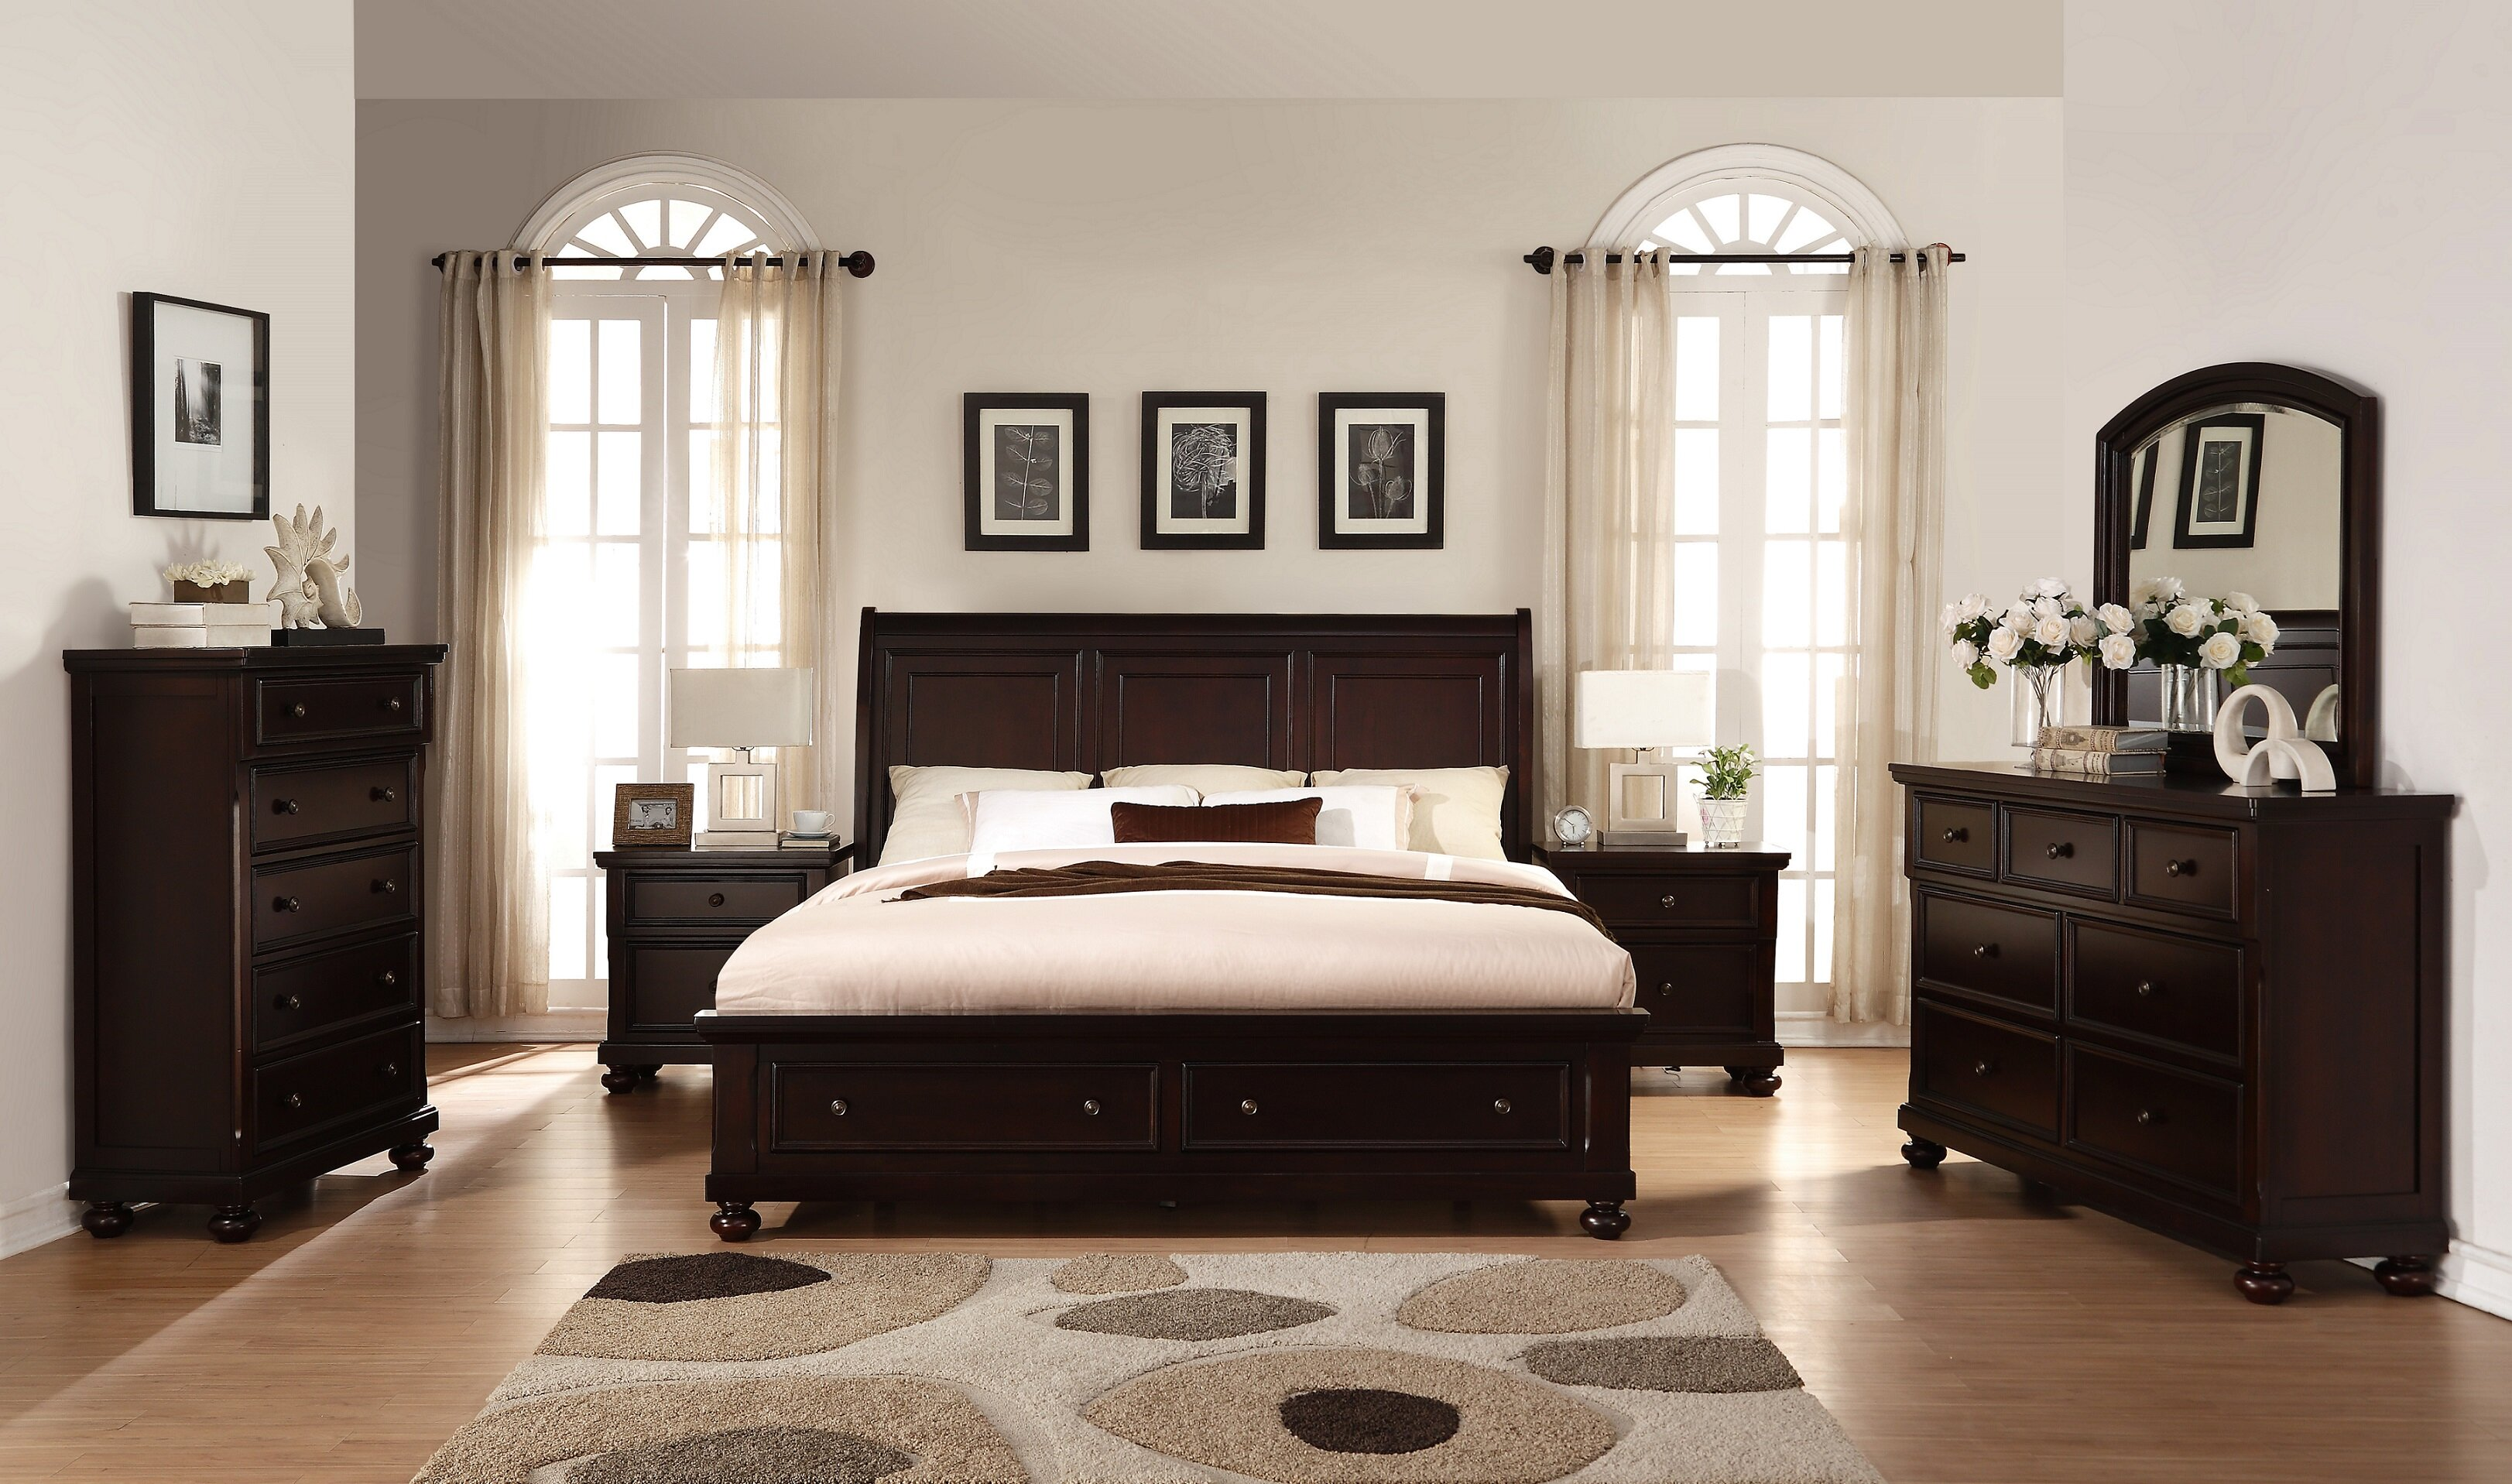 Jaimes King Platform 6 Piece Bedroom Set